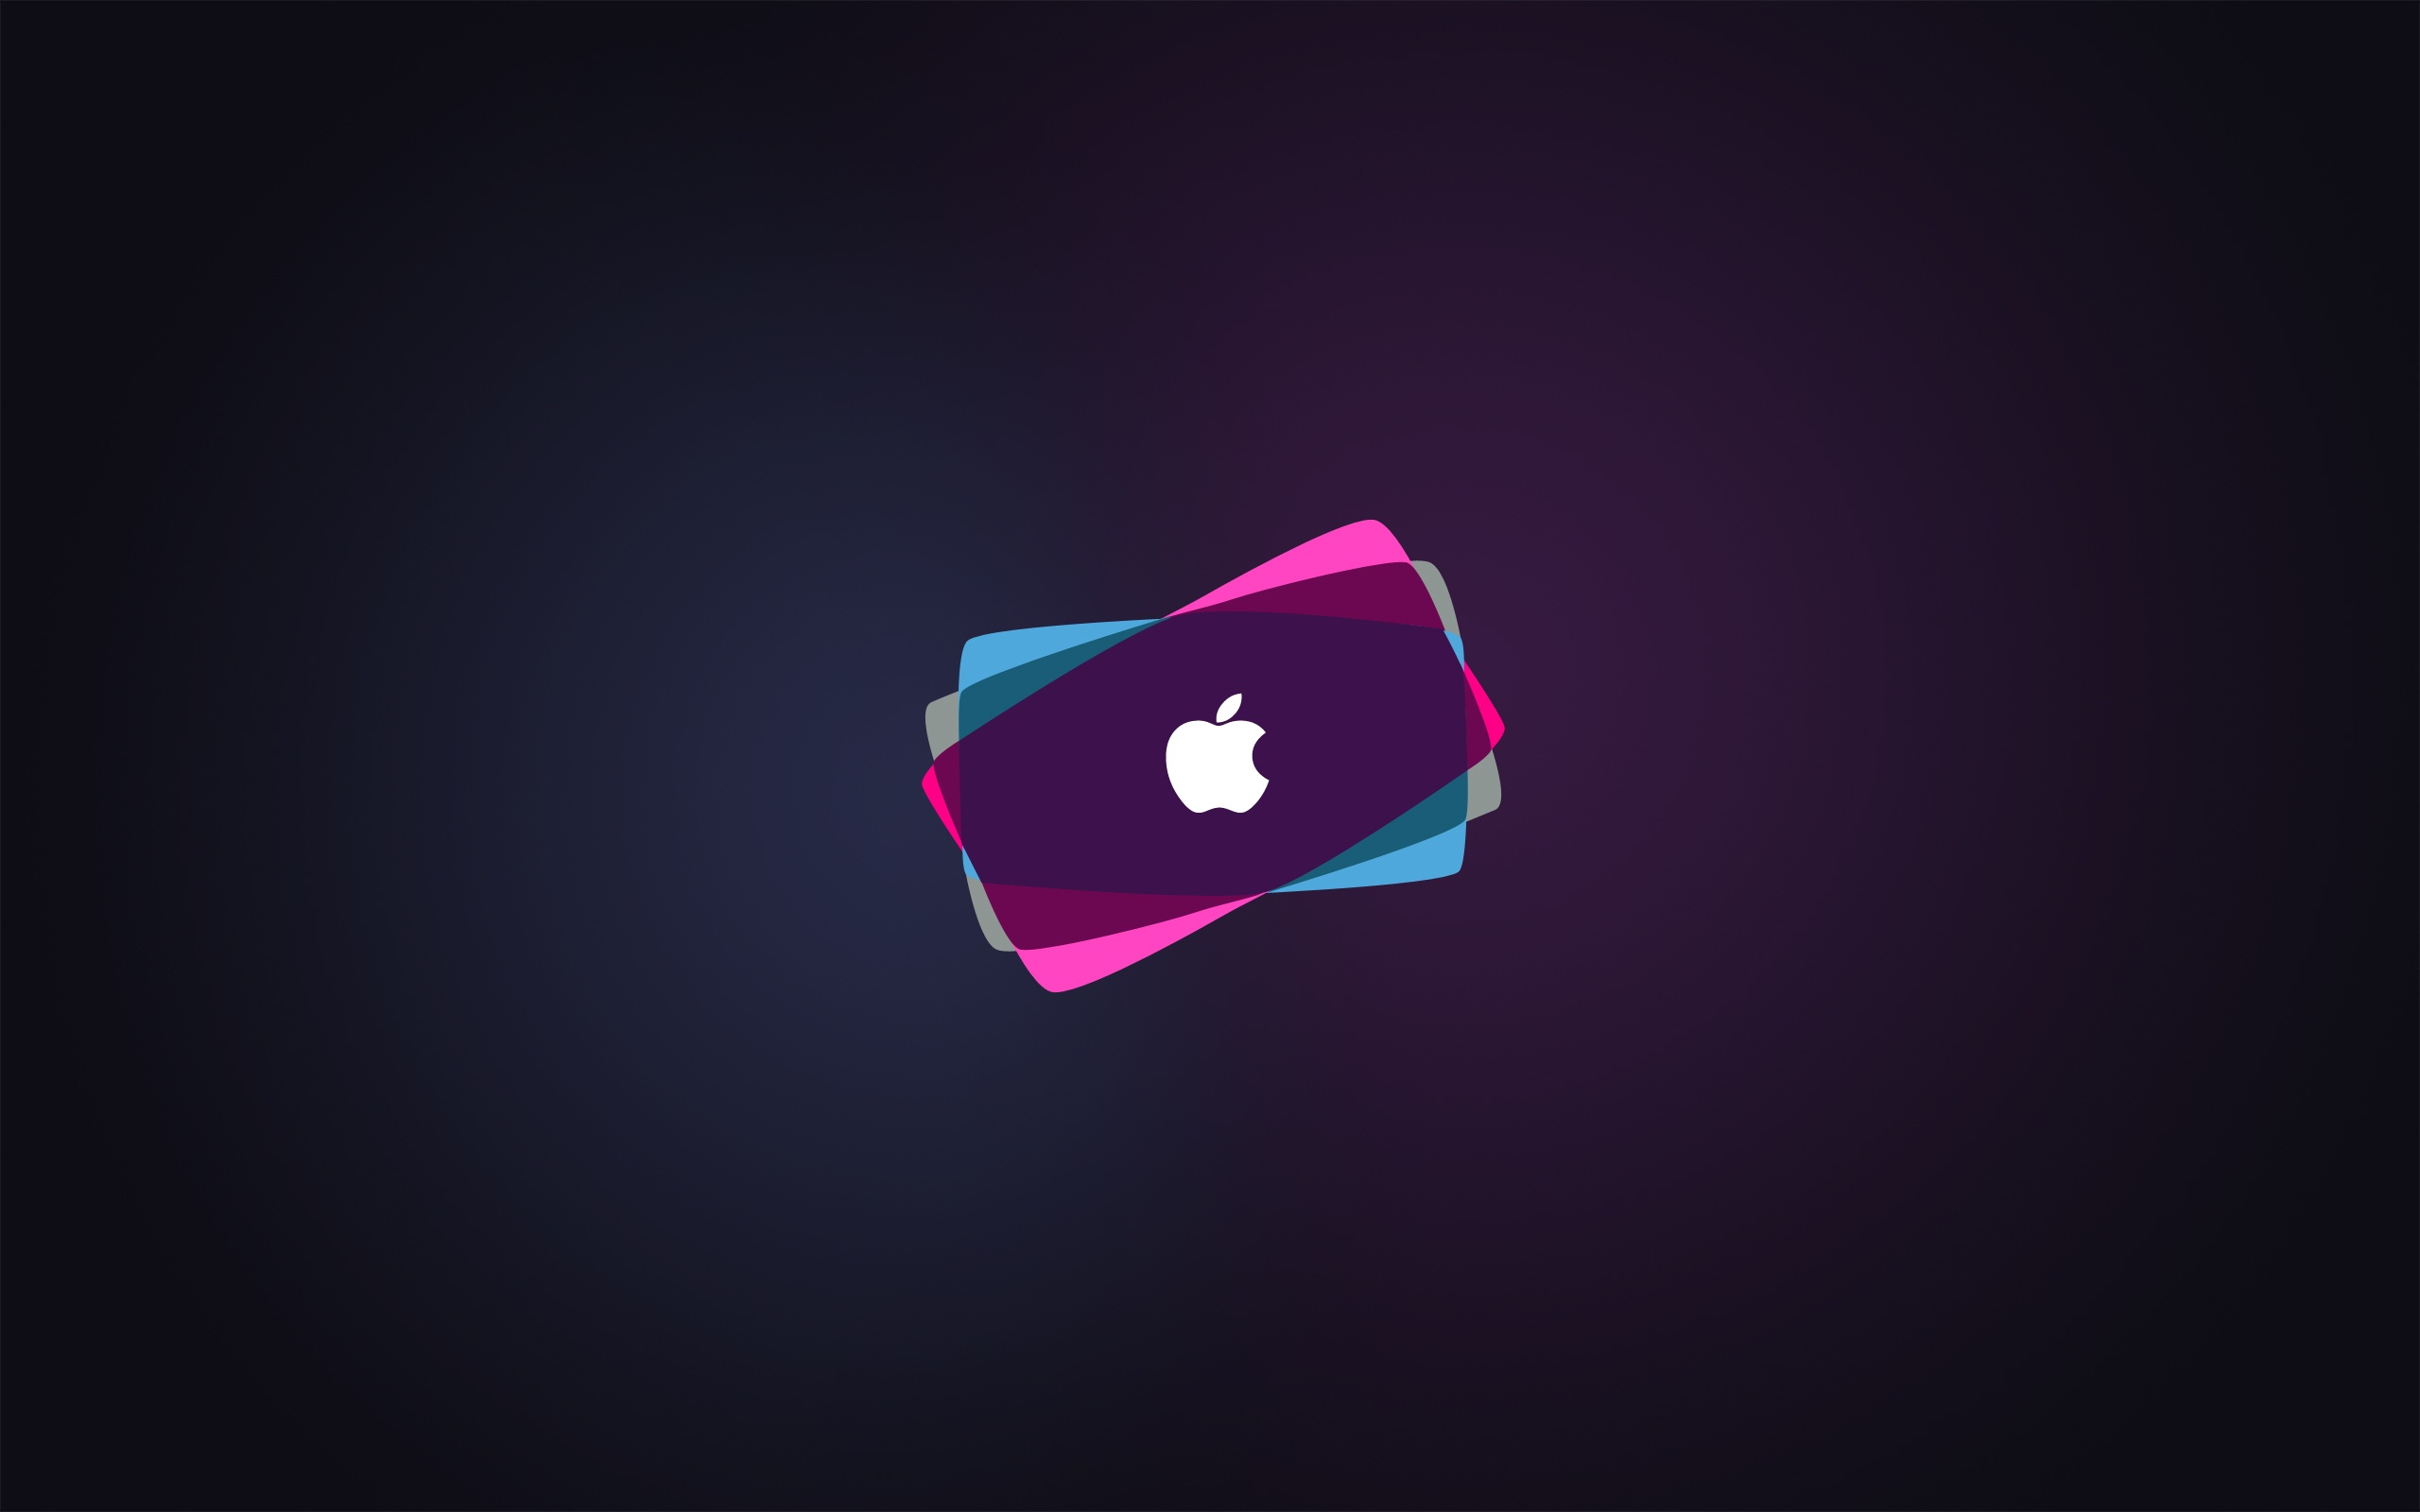 Apple HD Wallpapers | Apple Logo Desktop Backgrounds - Page 1